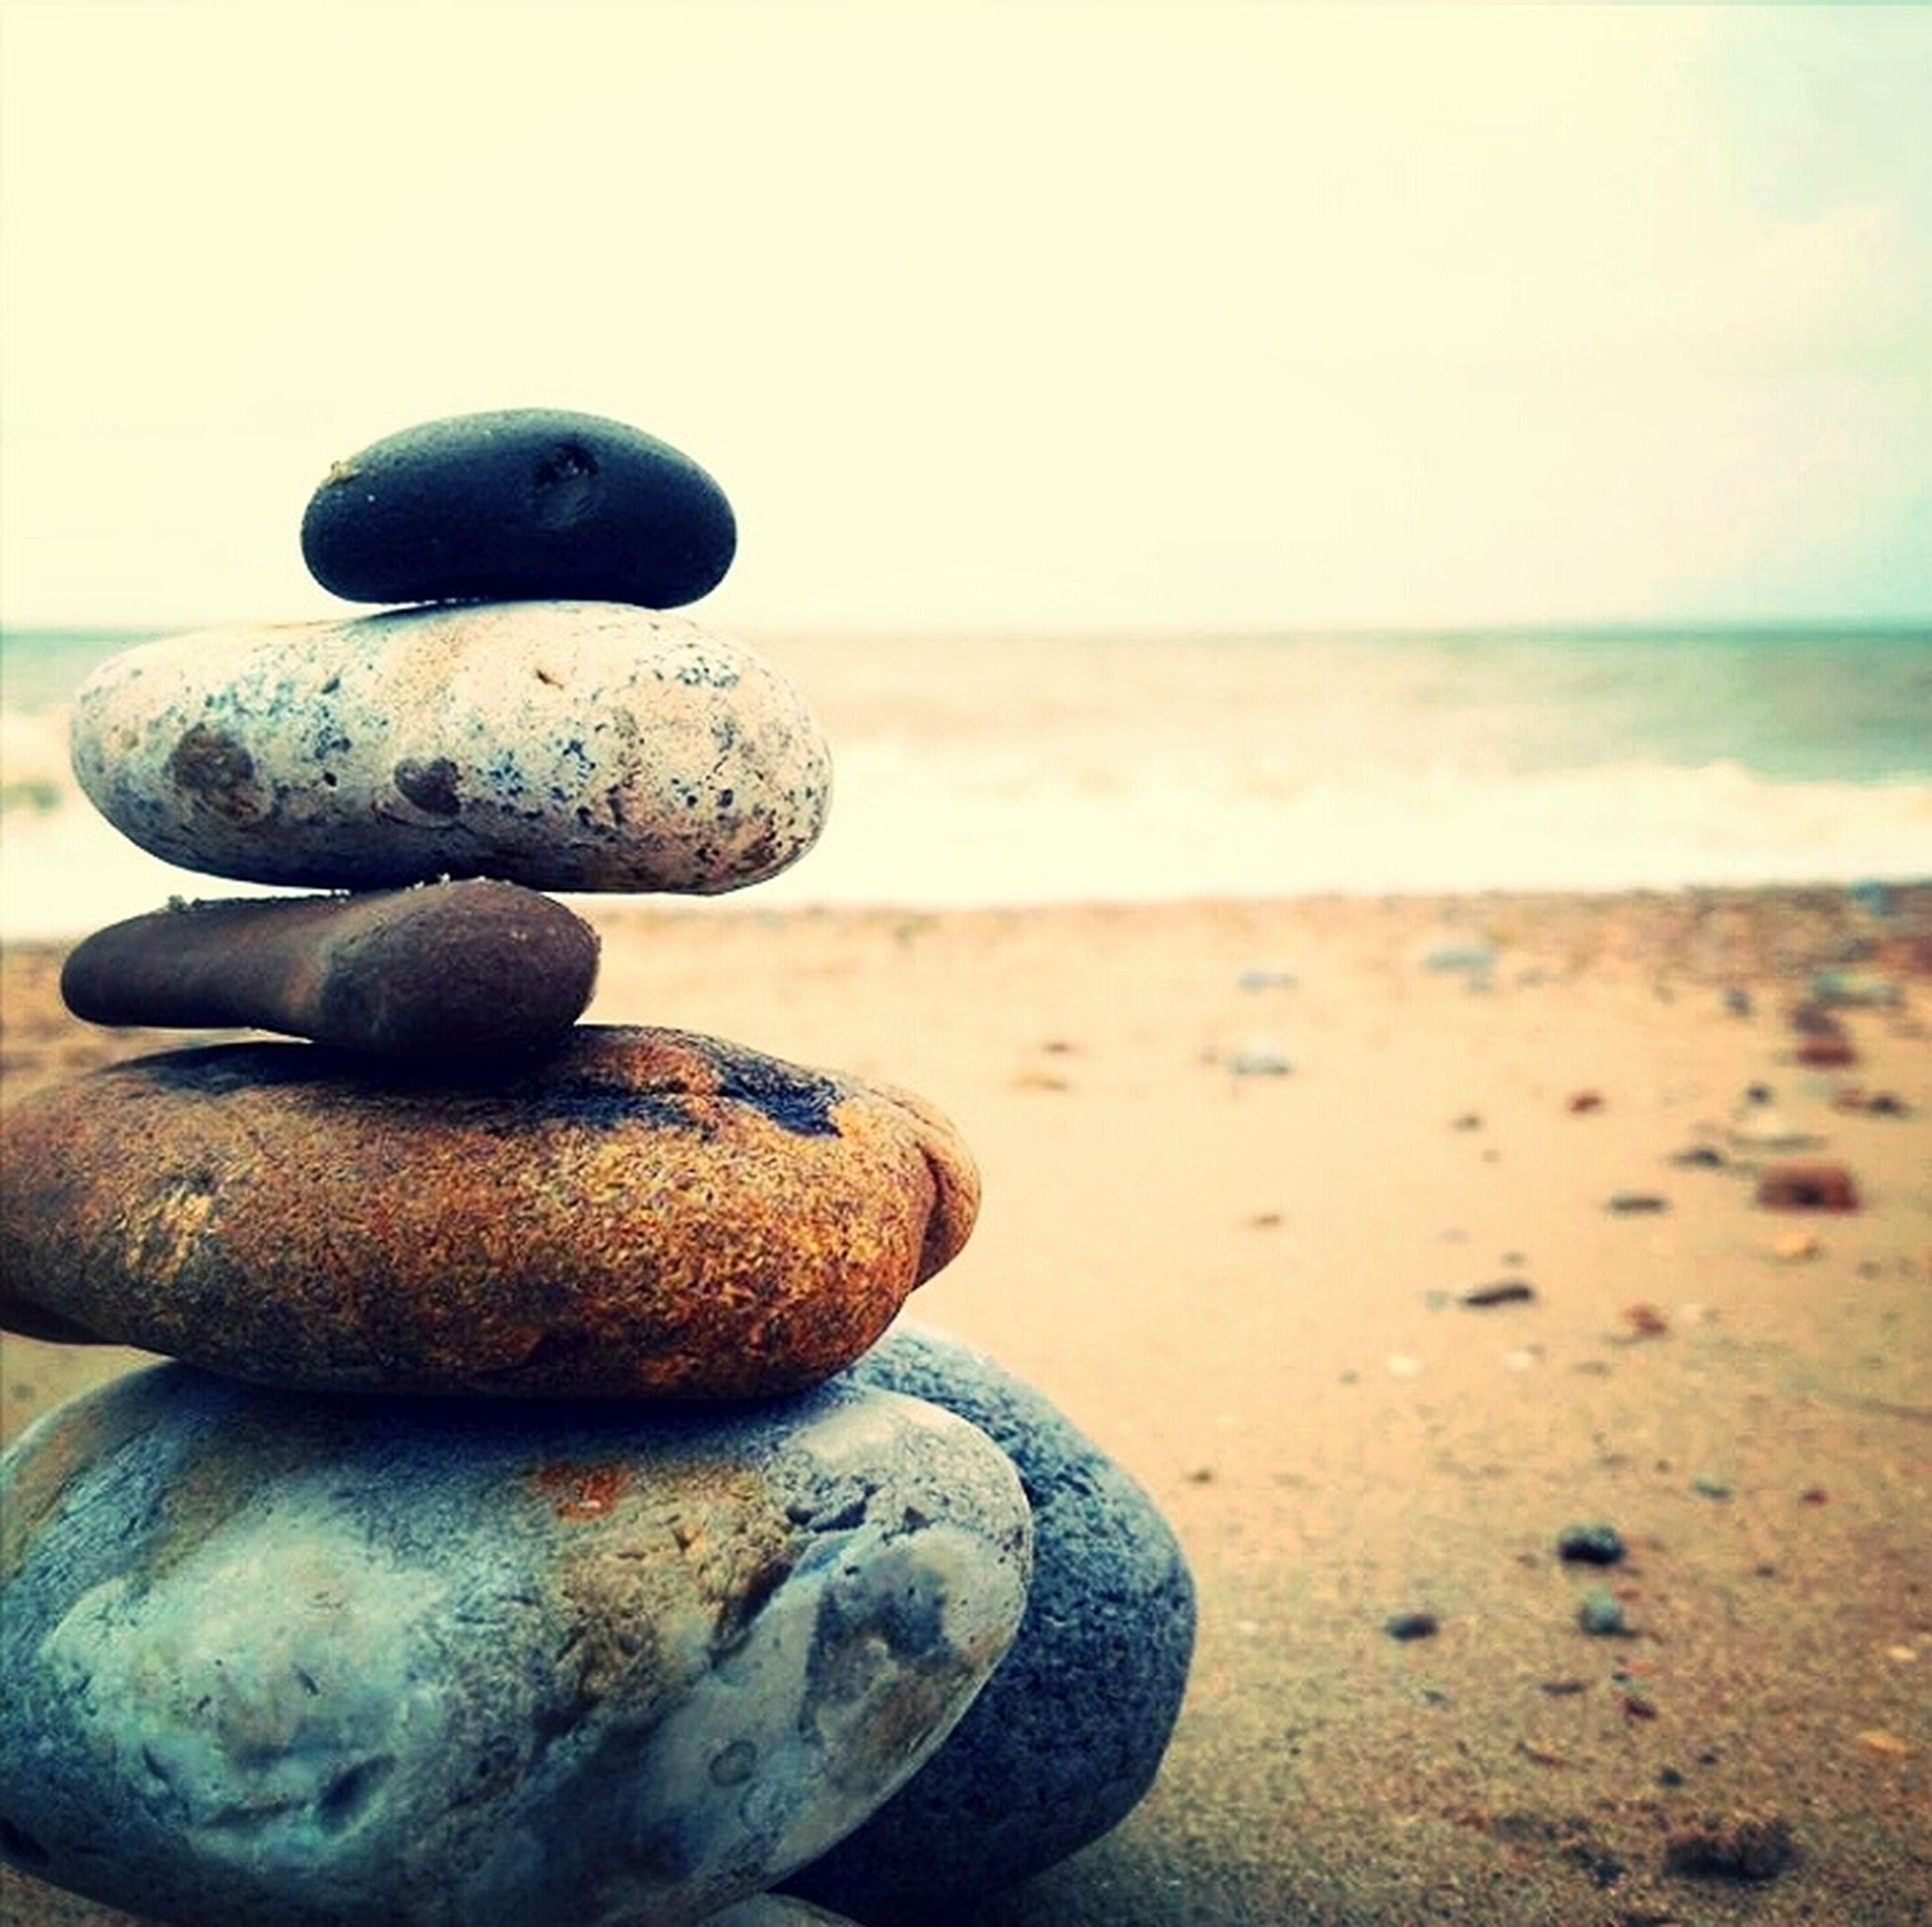 sea, beach, horizon over water, stone - object, shore, water, close-up, focus on foreground, metal, pebble, sky, sand, day, balance, tranquility, nature, rock - object, metallic, no people, outdoors